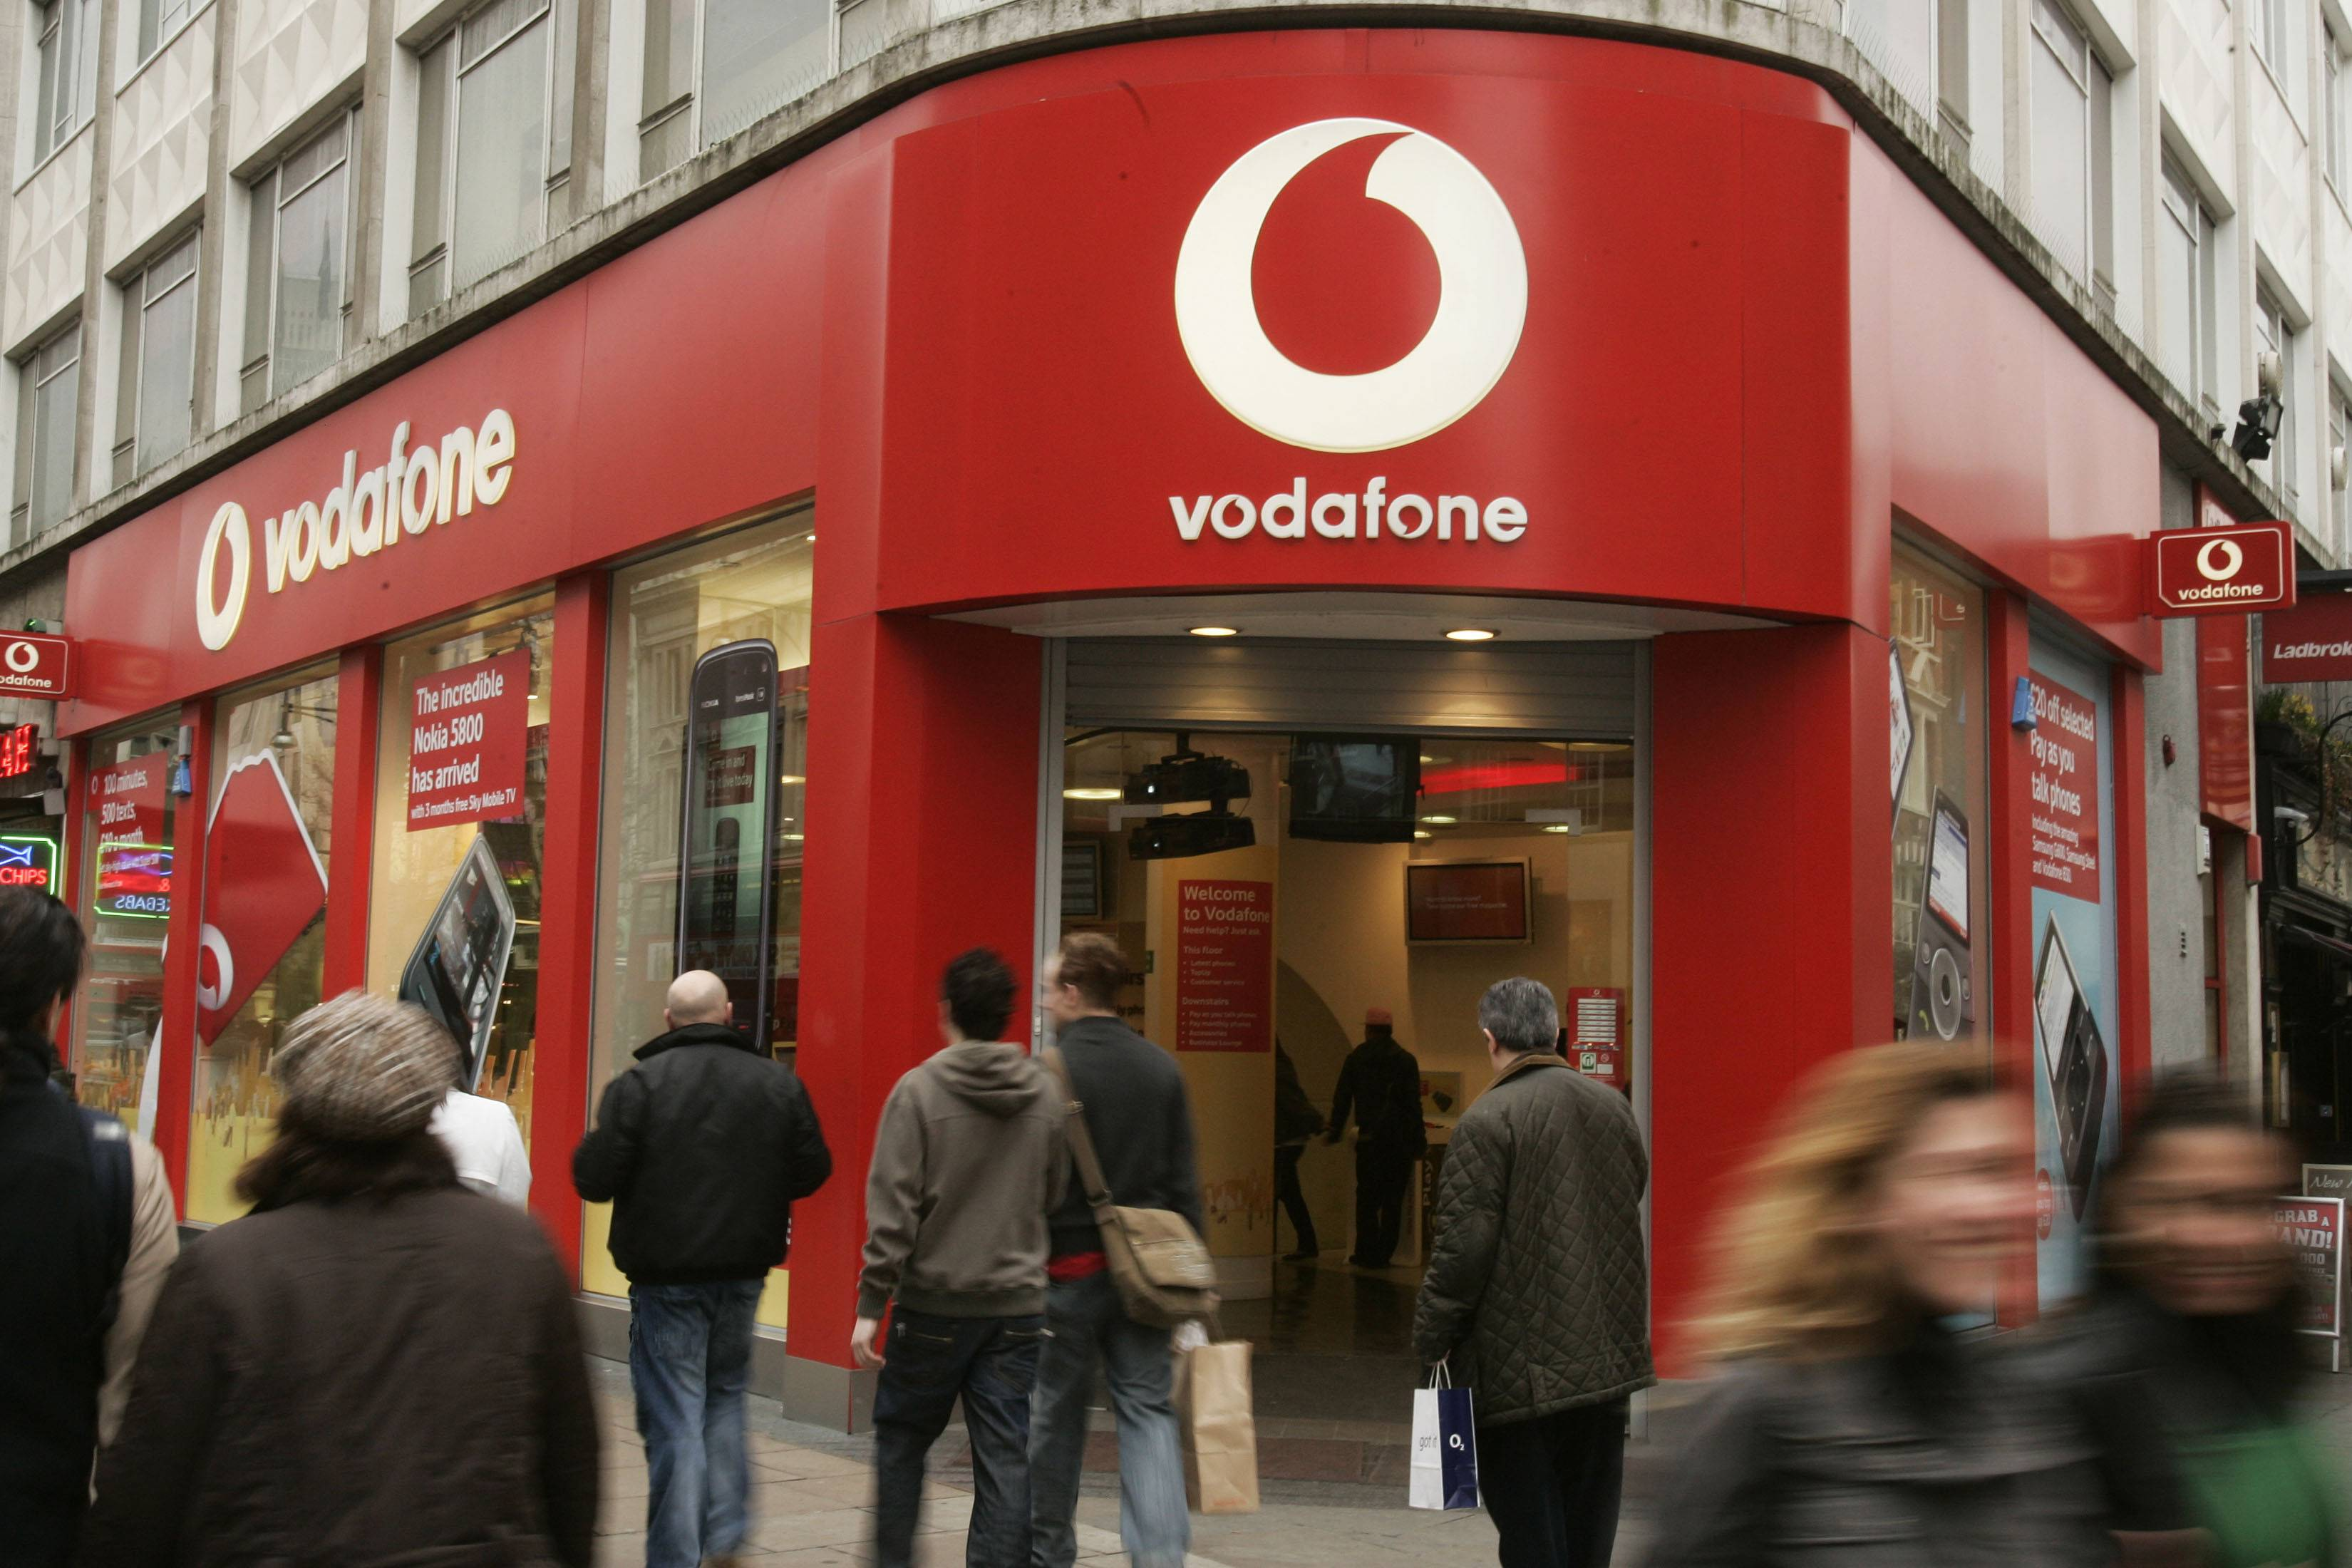 People walk by a branch of Vodafone in central London. Vodafone, one of the world's largest cellphone companies, revealed the scope of government snooping into phone networks Friday.